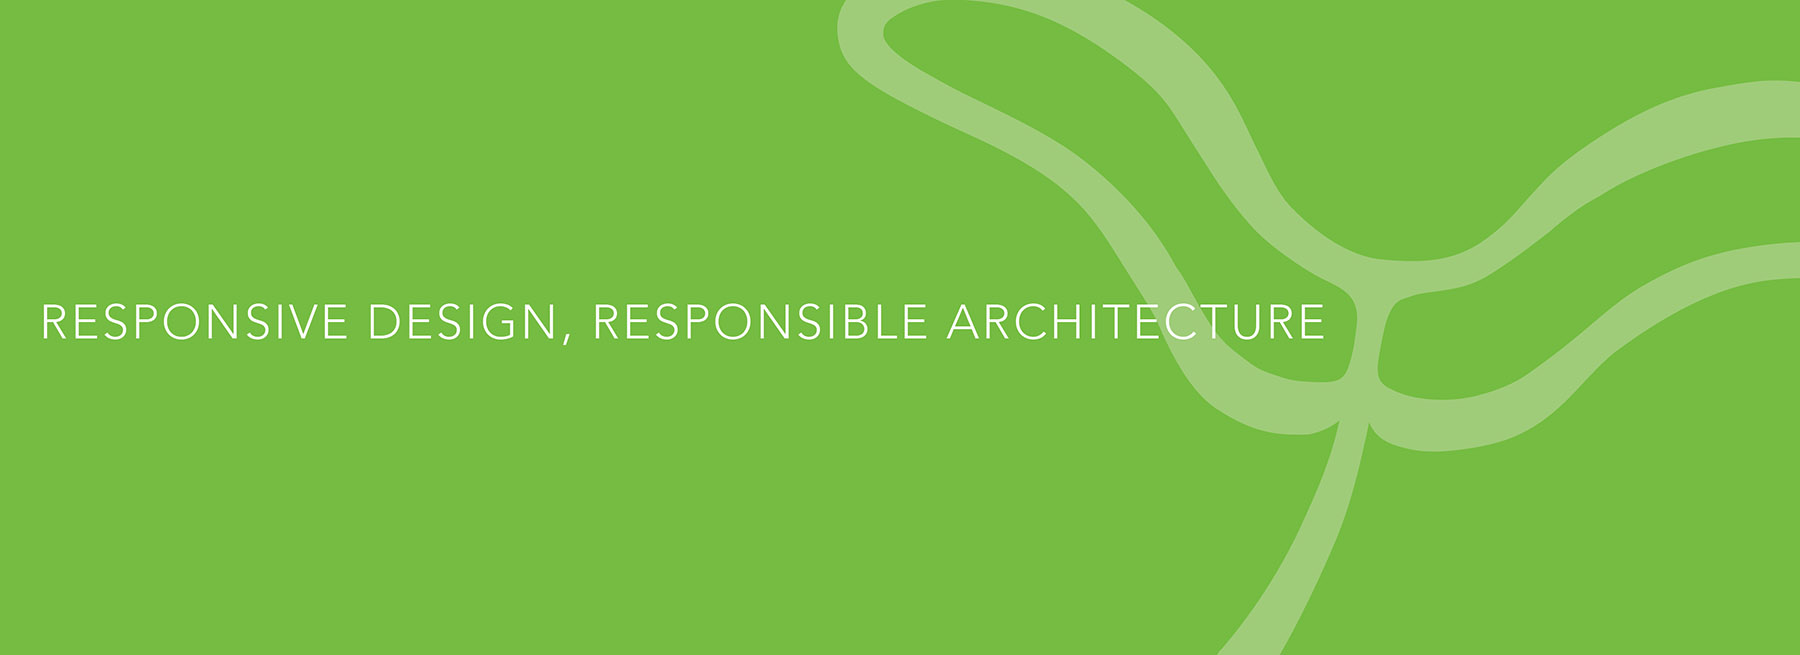 Green Propeller, Responsive Design, Responsible Architecture